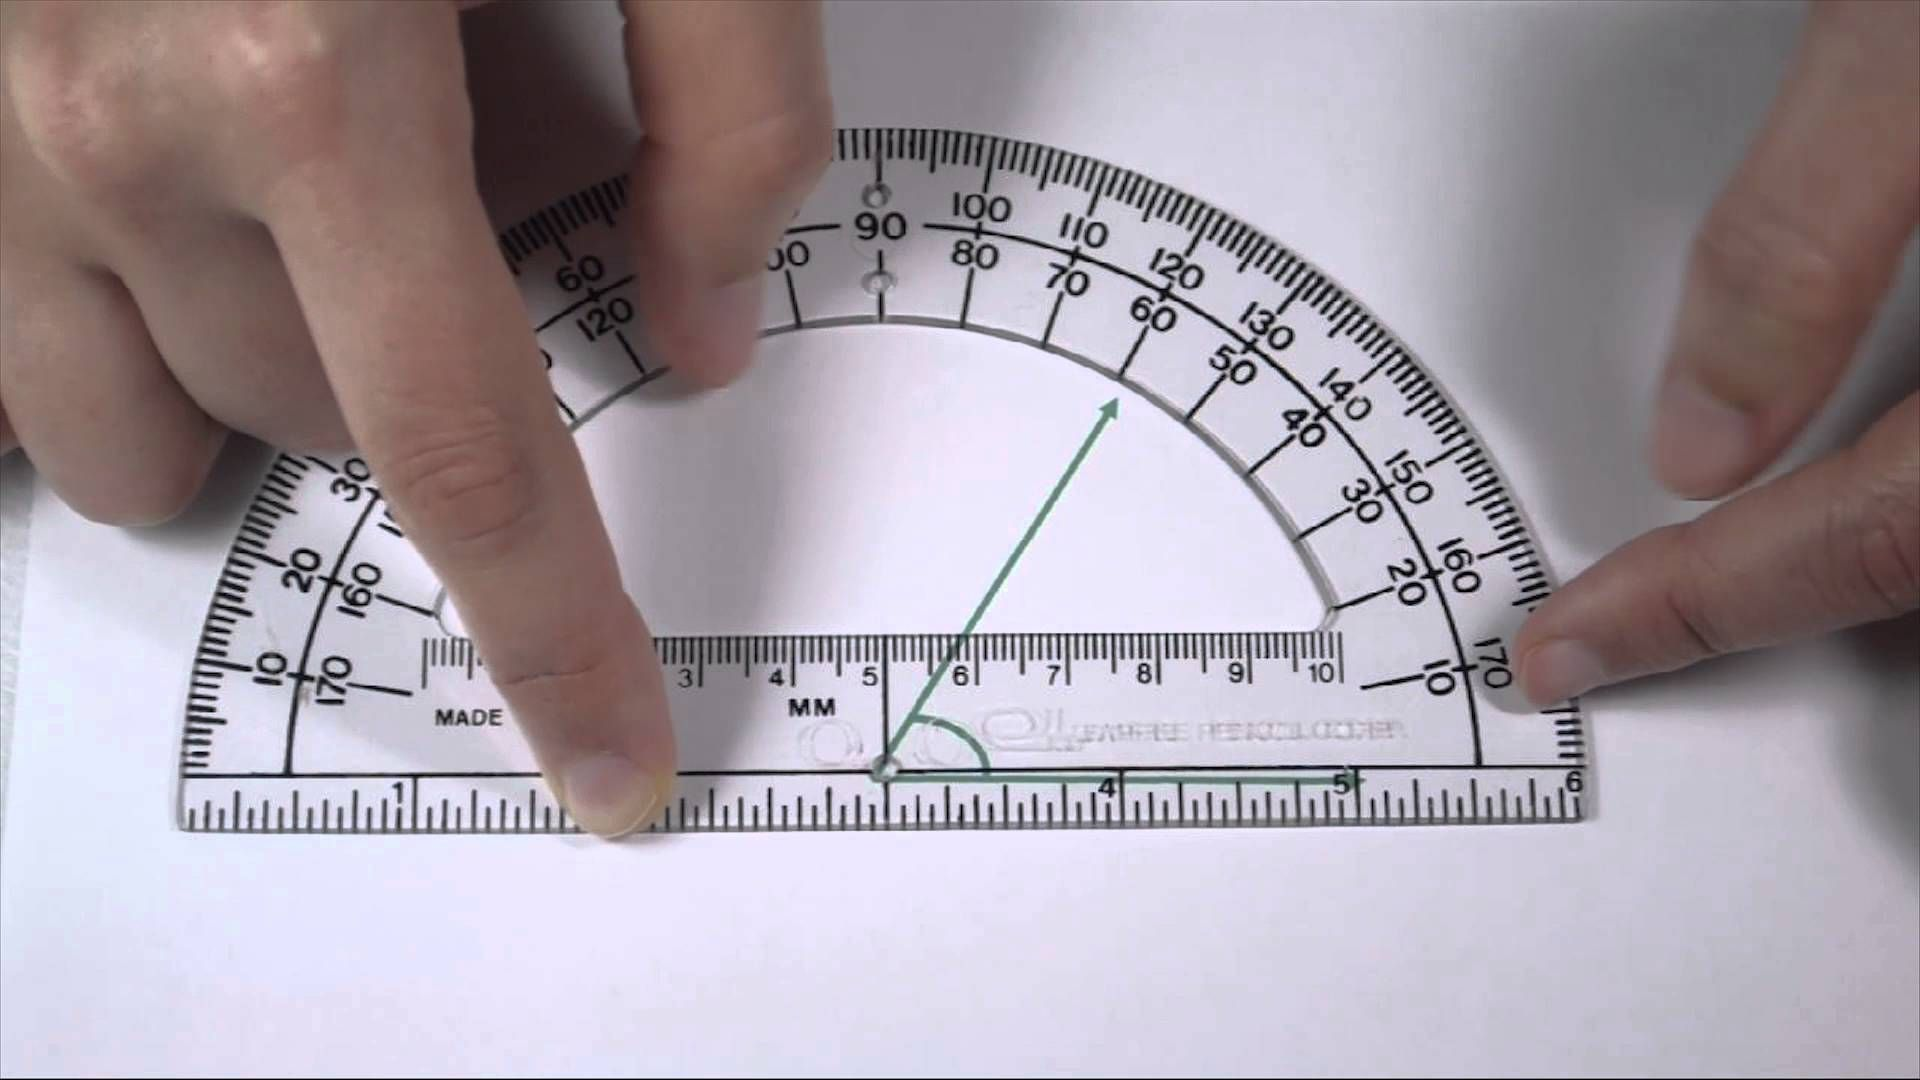 Angles Part 2 Measuring Angles With A Protractor Measuring Angles Protractor Math Tutorials